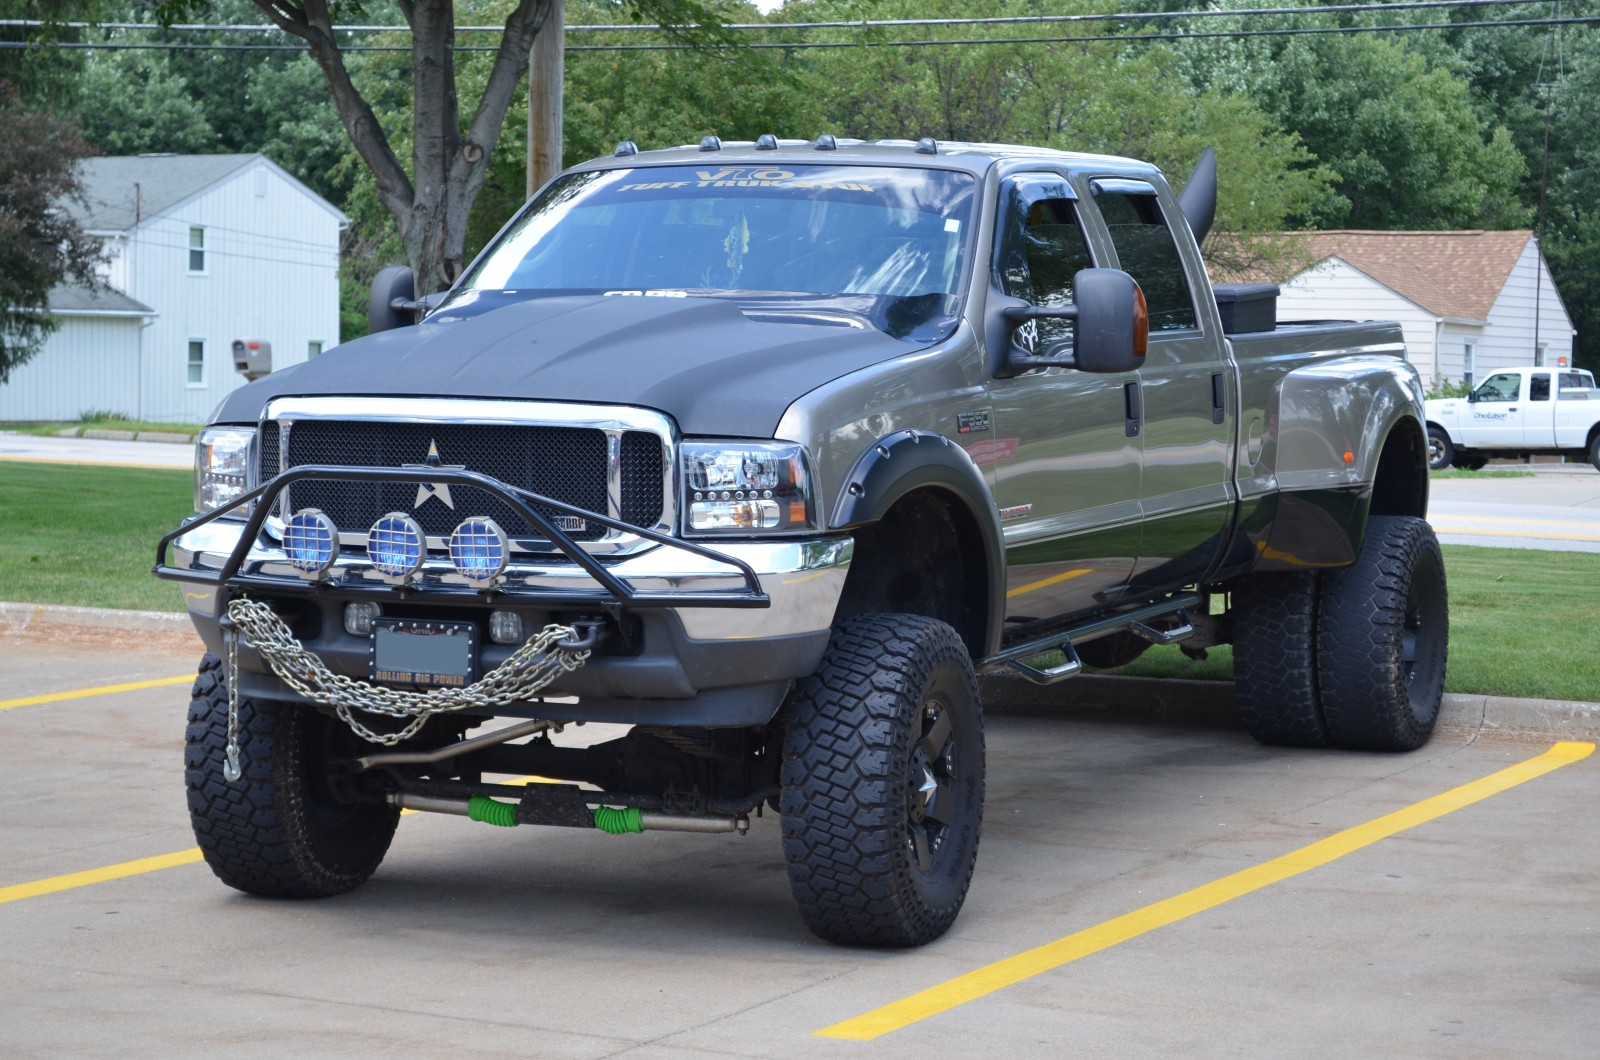 Lot Shots Find of the Week: Ford F-350 Diesel - OnAllCylinders